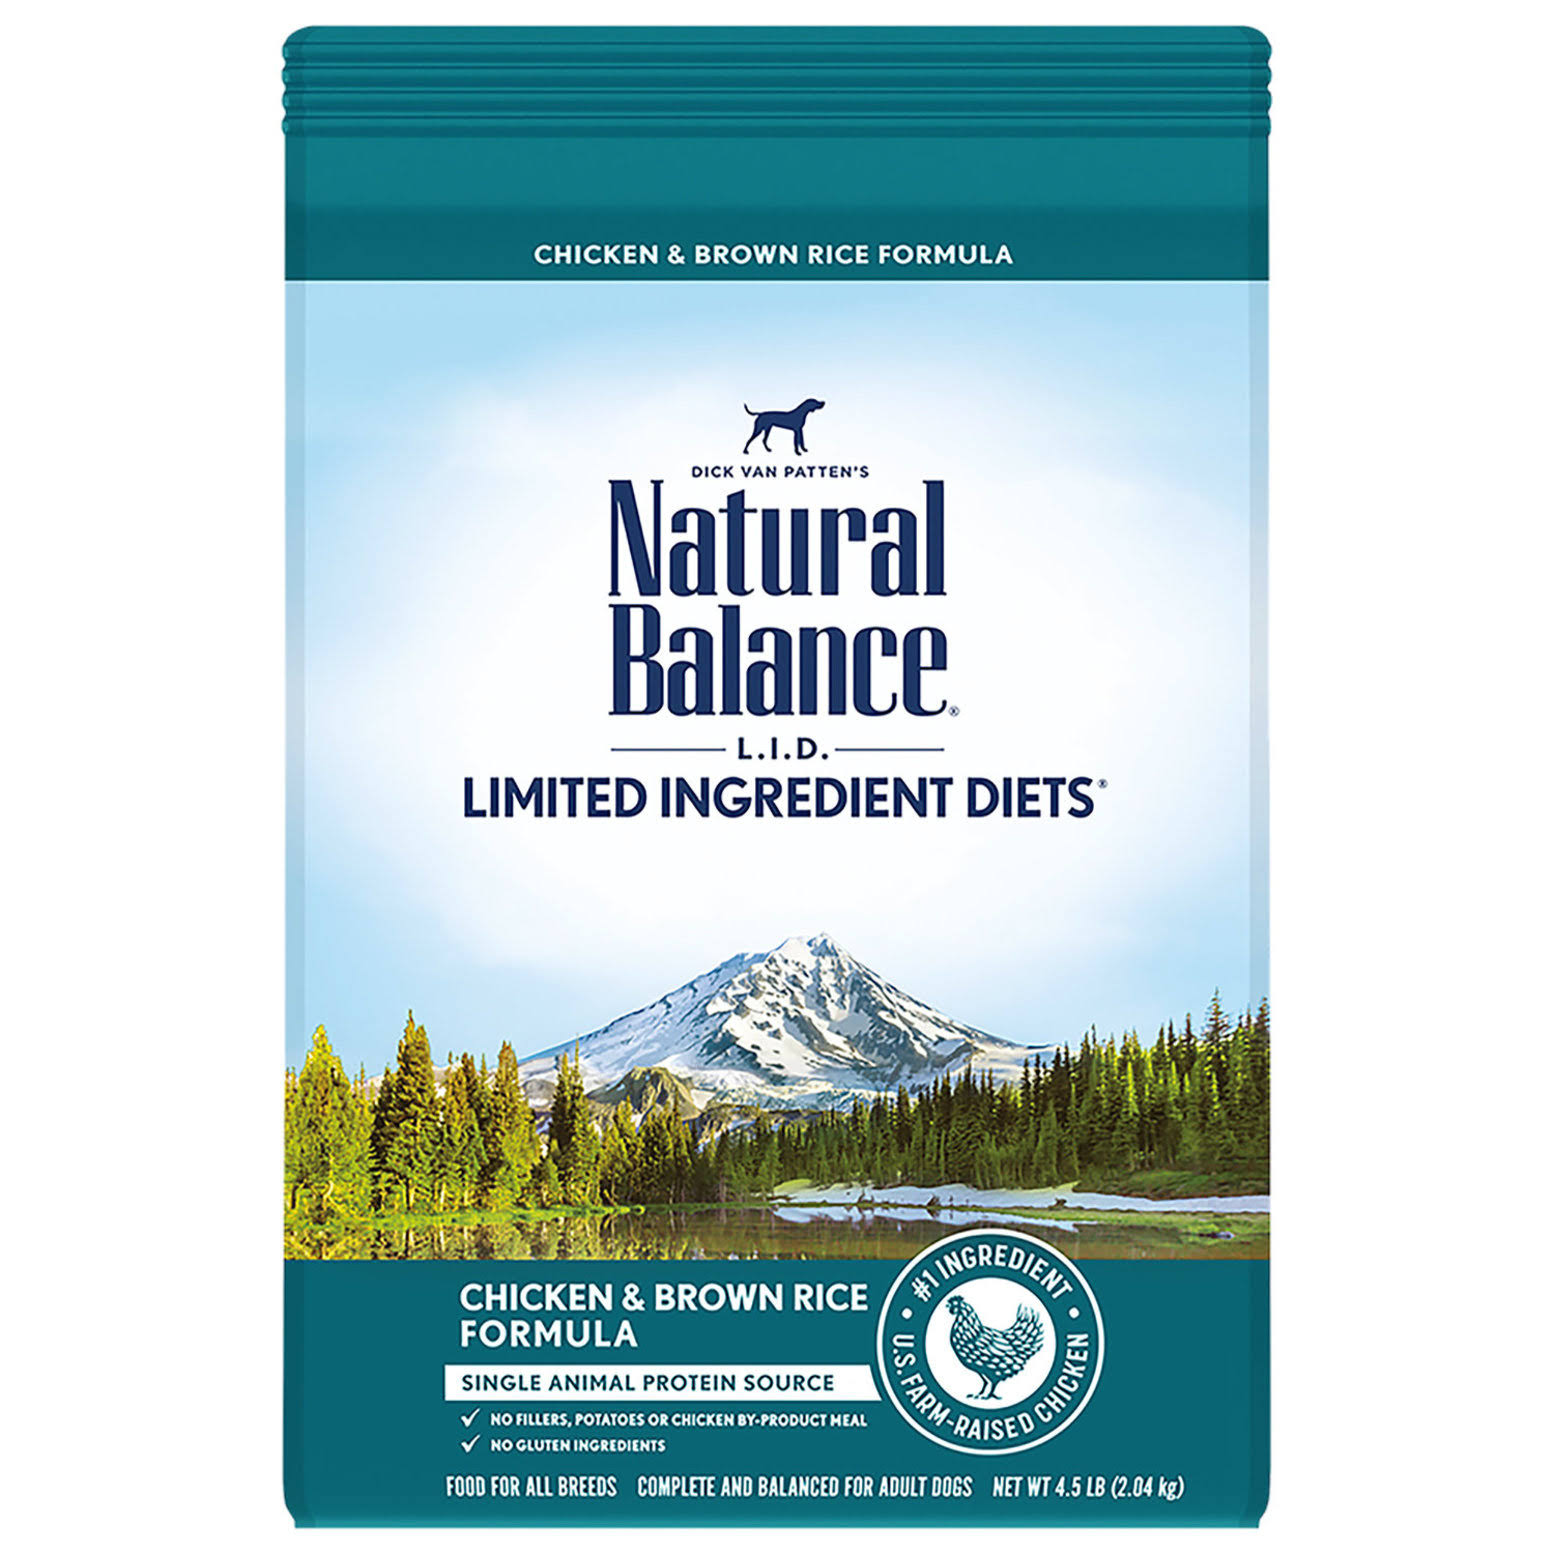 Natural Balance L.I.D. Limited Ingredient Diets Chicken & Brown Rice Formula Dry Dog Food, 12-lb Bag